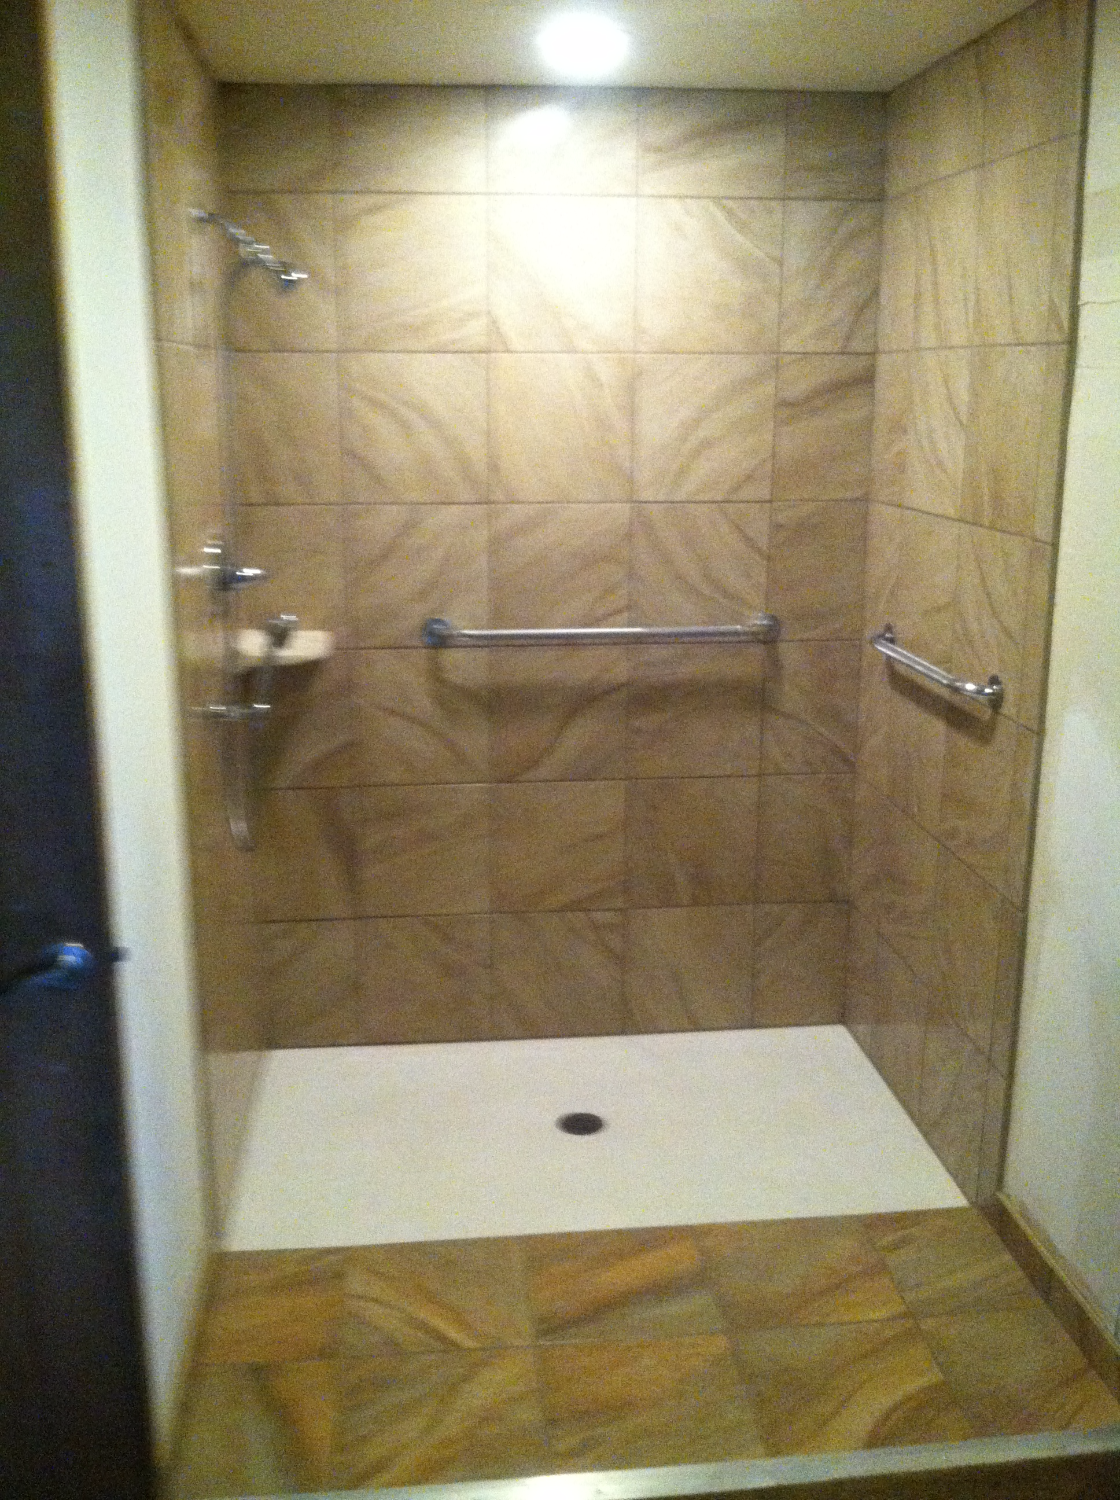 Converted Closet into Shower